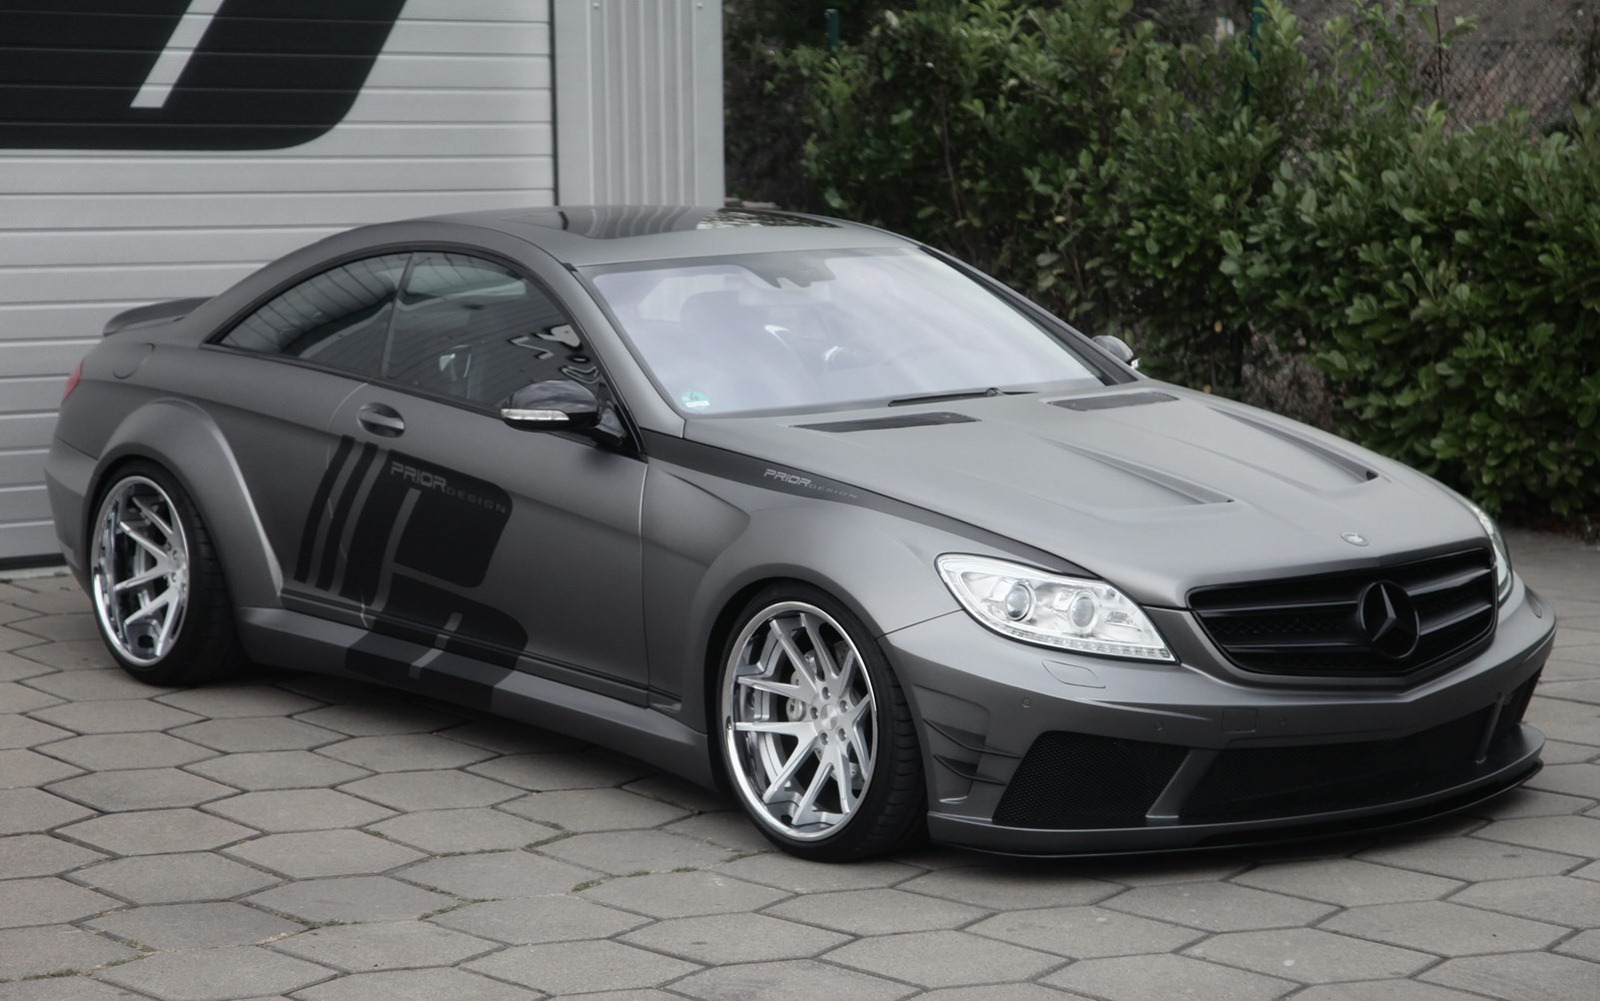 Mercedes CL-Class Coupe by Prior Design